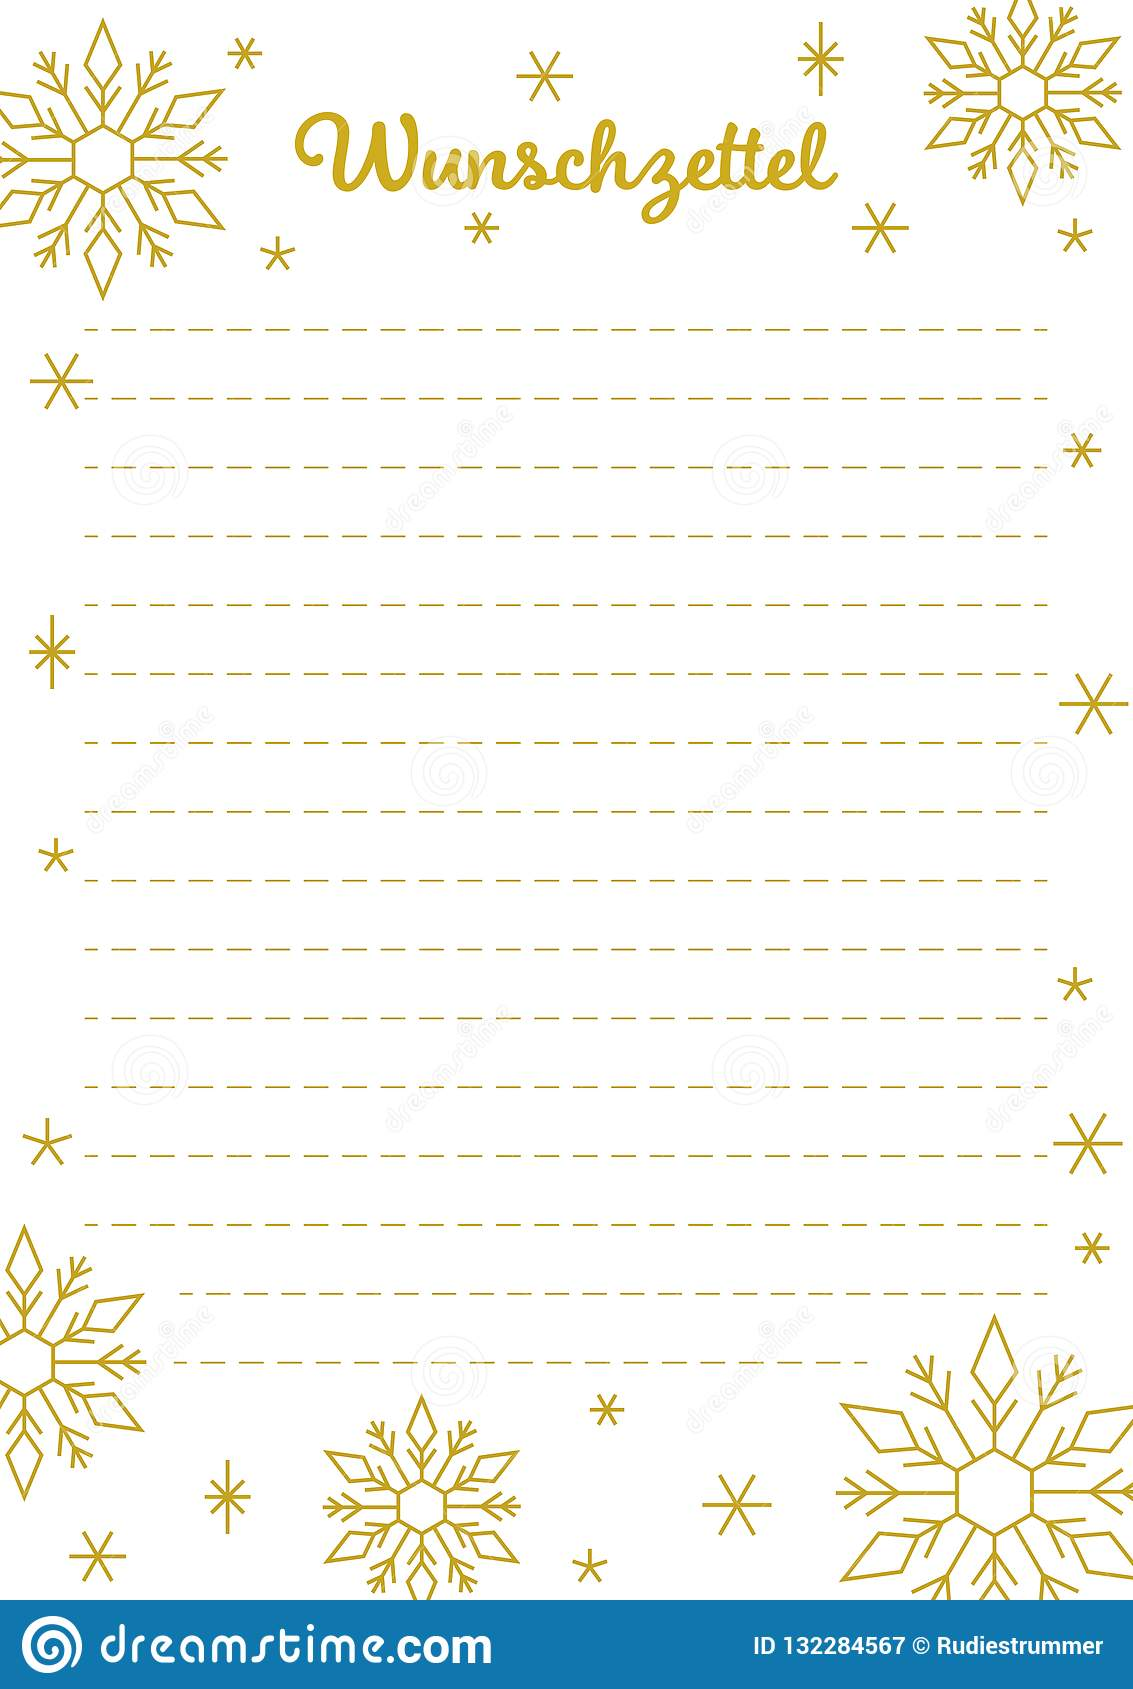 image relating to Wish List Printable named Xmas Drive Listing, German, Printable, Golden Lettering And